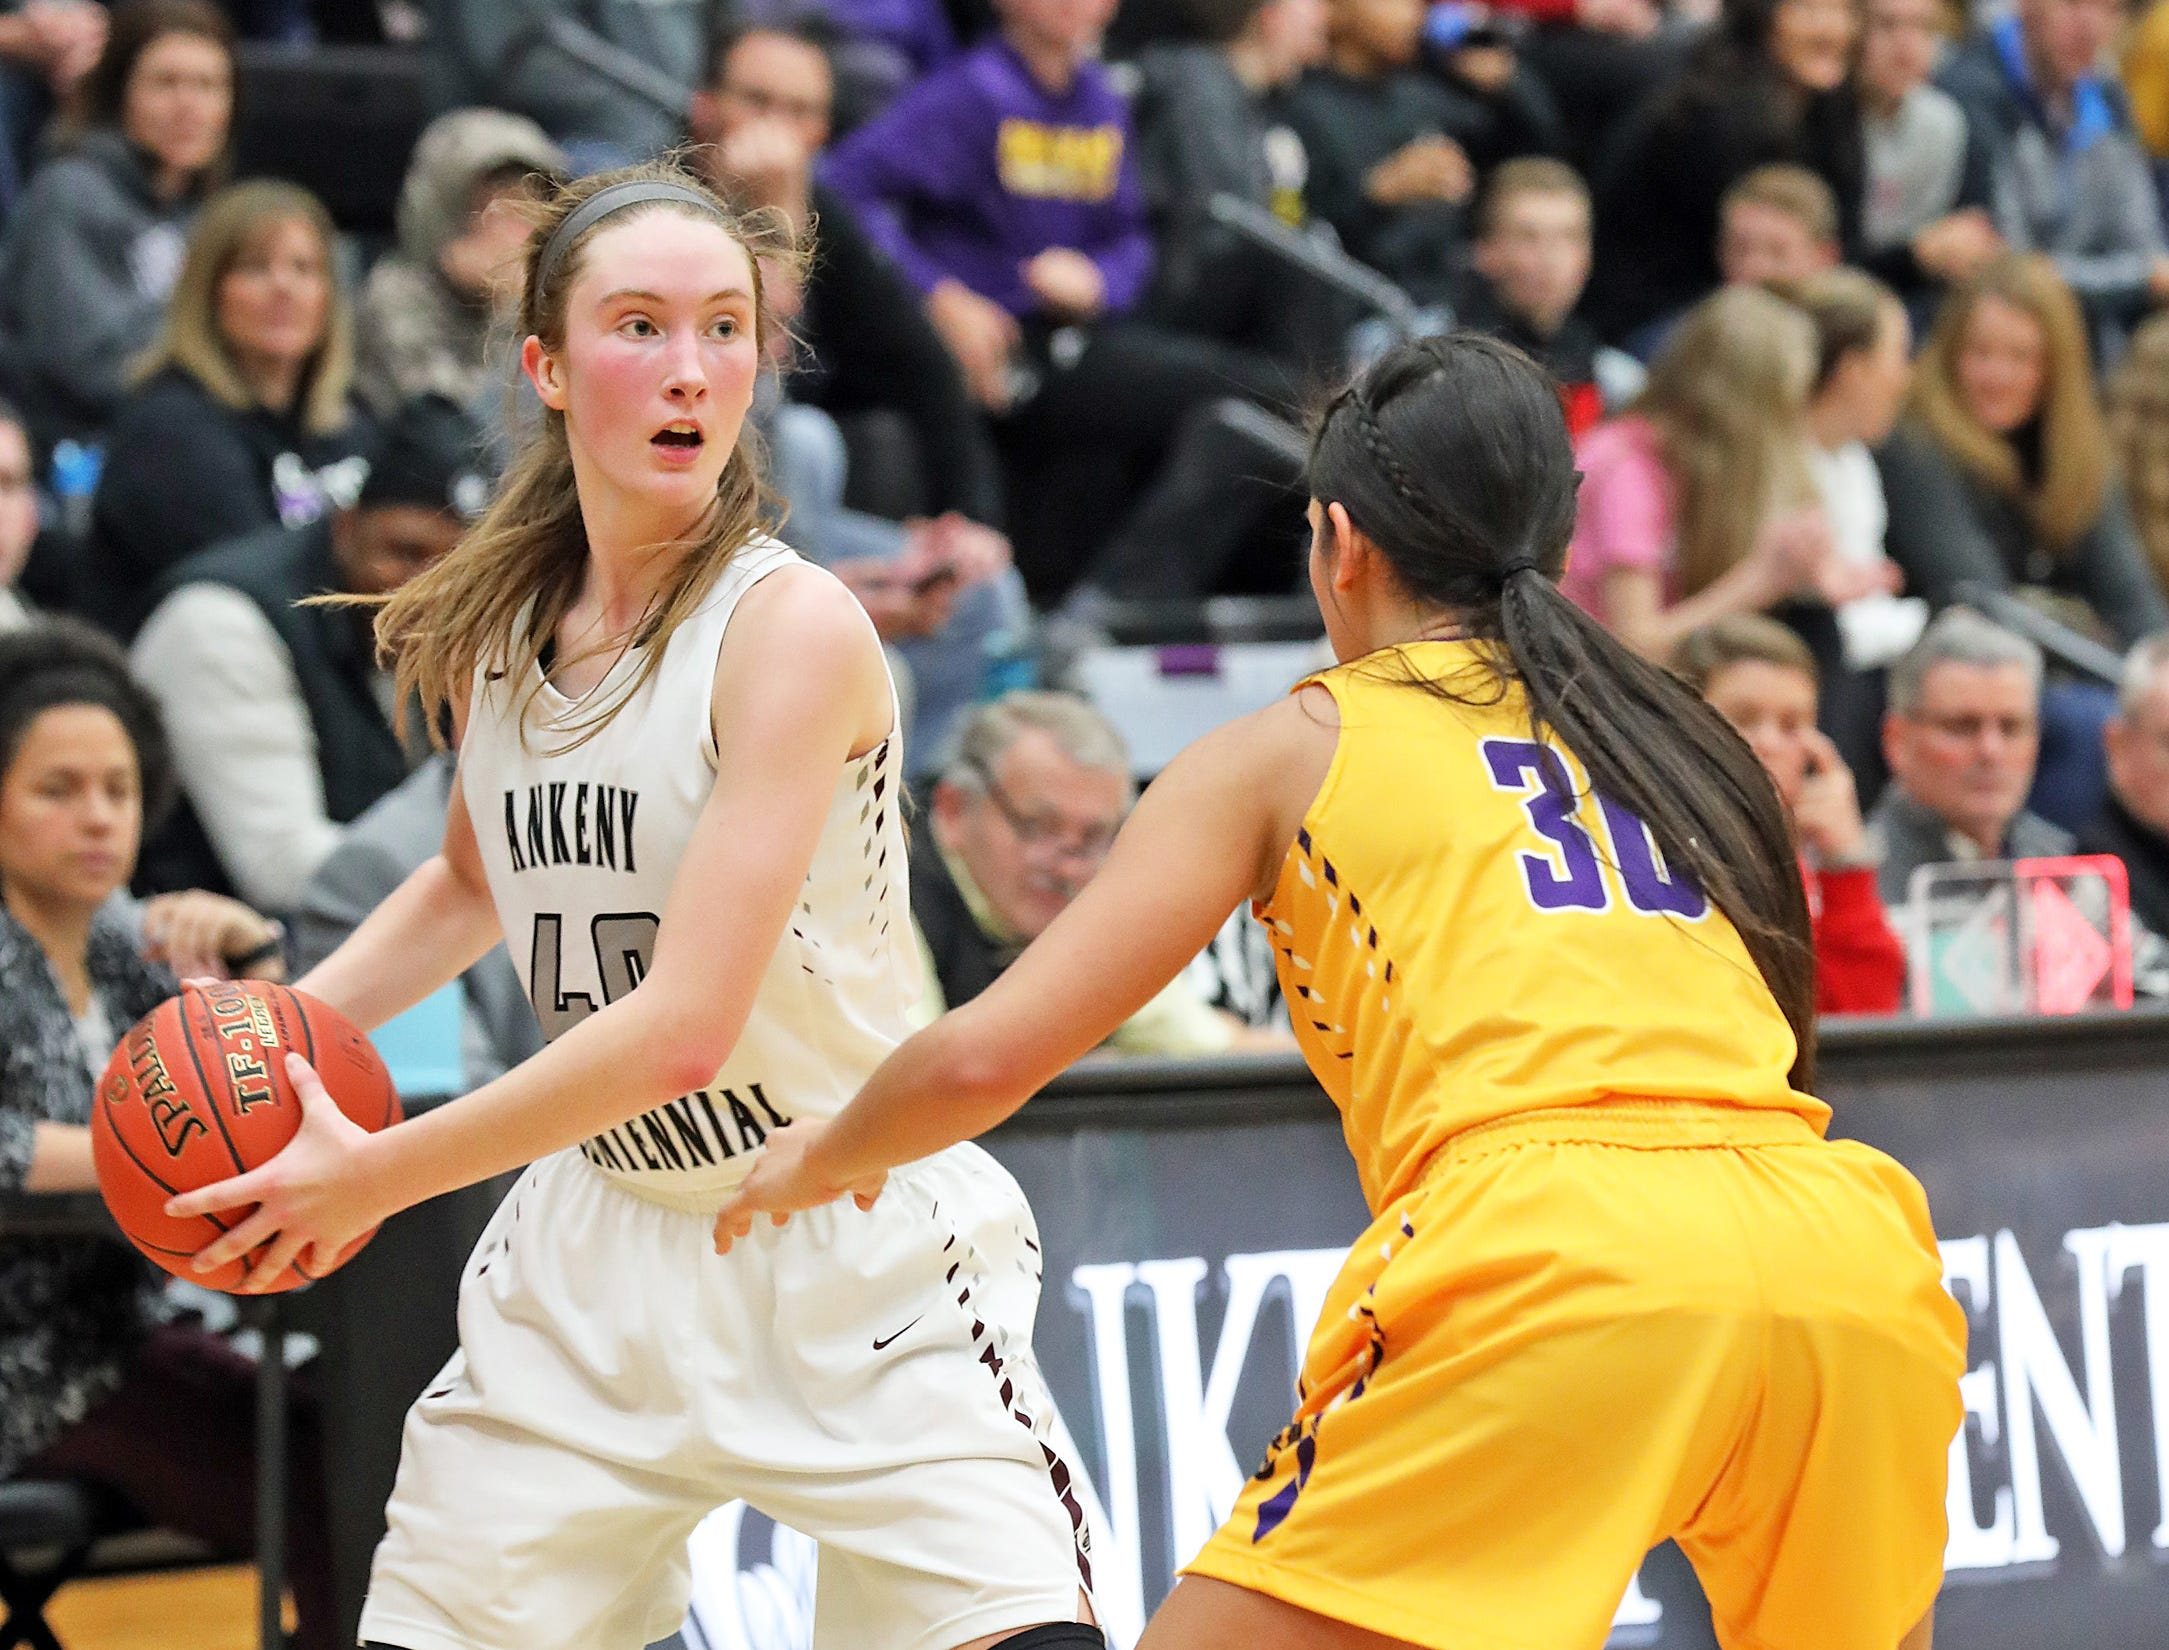 Ankeny Centennial junior Meg Burns looks to pass around Johnston junior Kendall Nead as the Johnston Dragons compete against the Ankeny Centennial Jaguars in high school girls basketball on Friday, Jan. 4, 2019 at Ankeny Centennial High School.